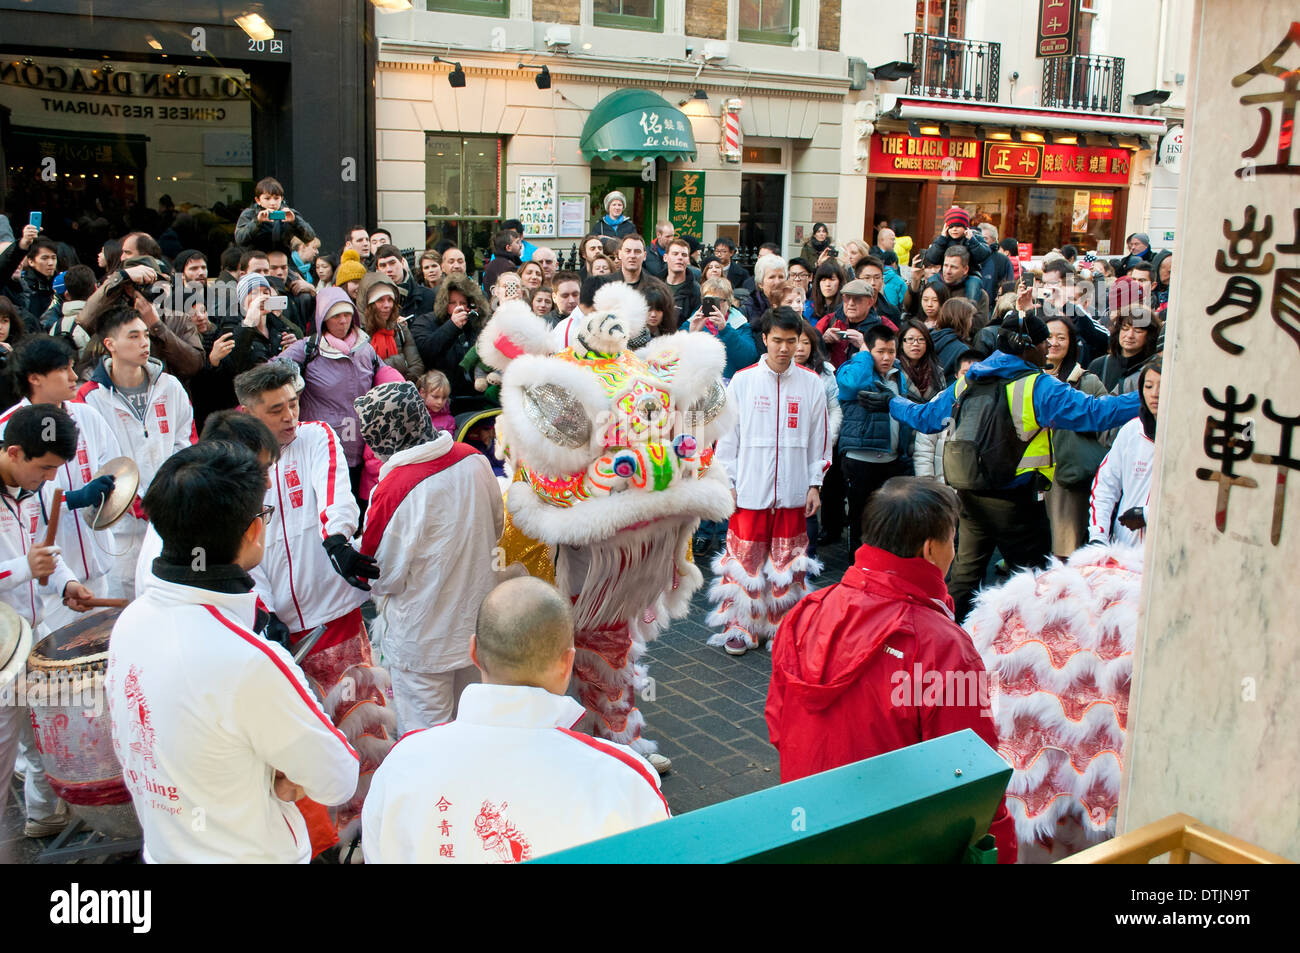 Lion dance, traditional Chinese custom believed to bring luck for the Chinese New Year, Chinatown, Soho, London, WC2, UK - Stock Image